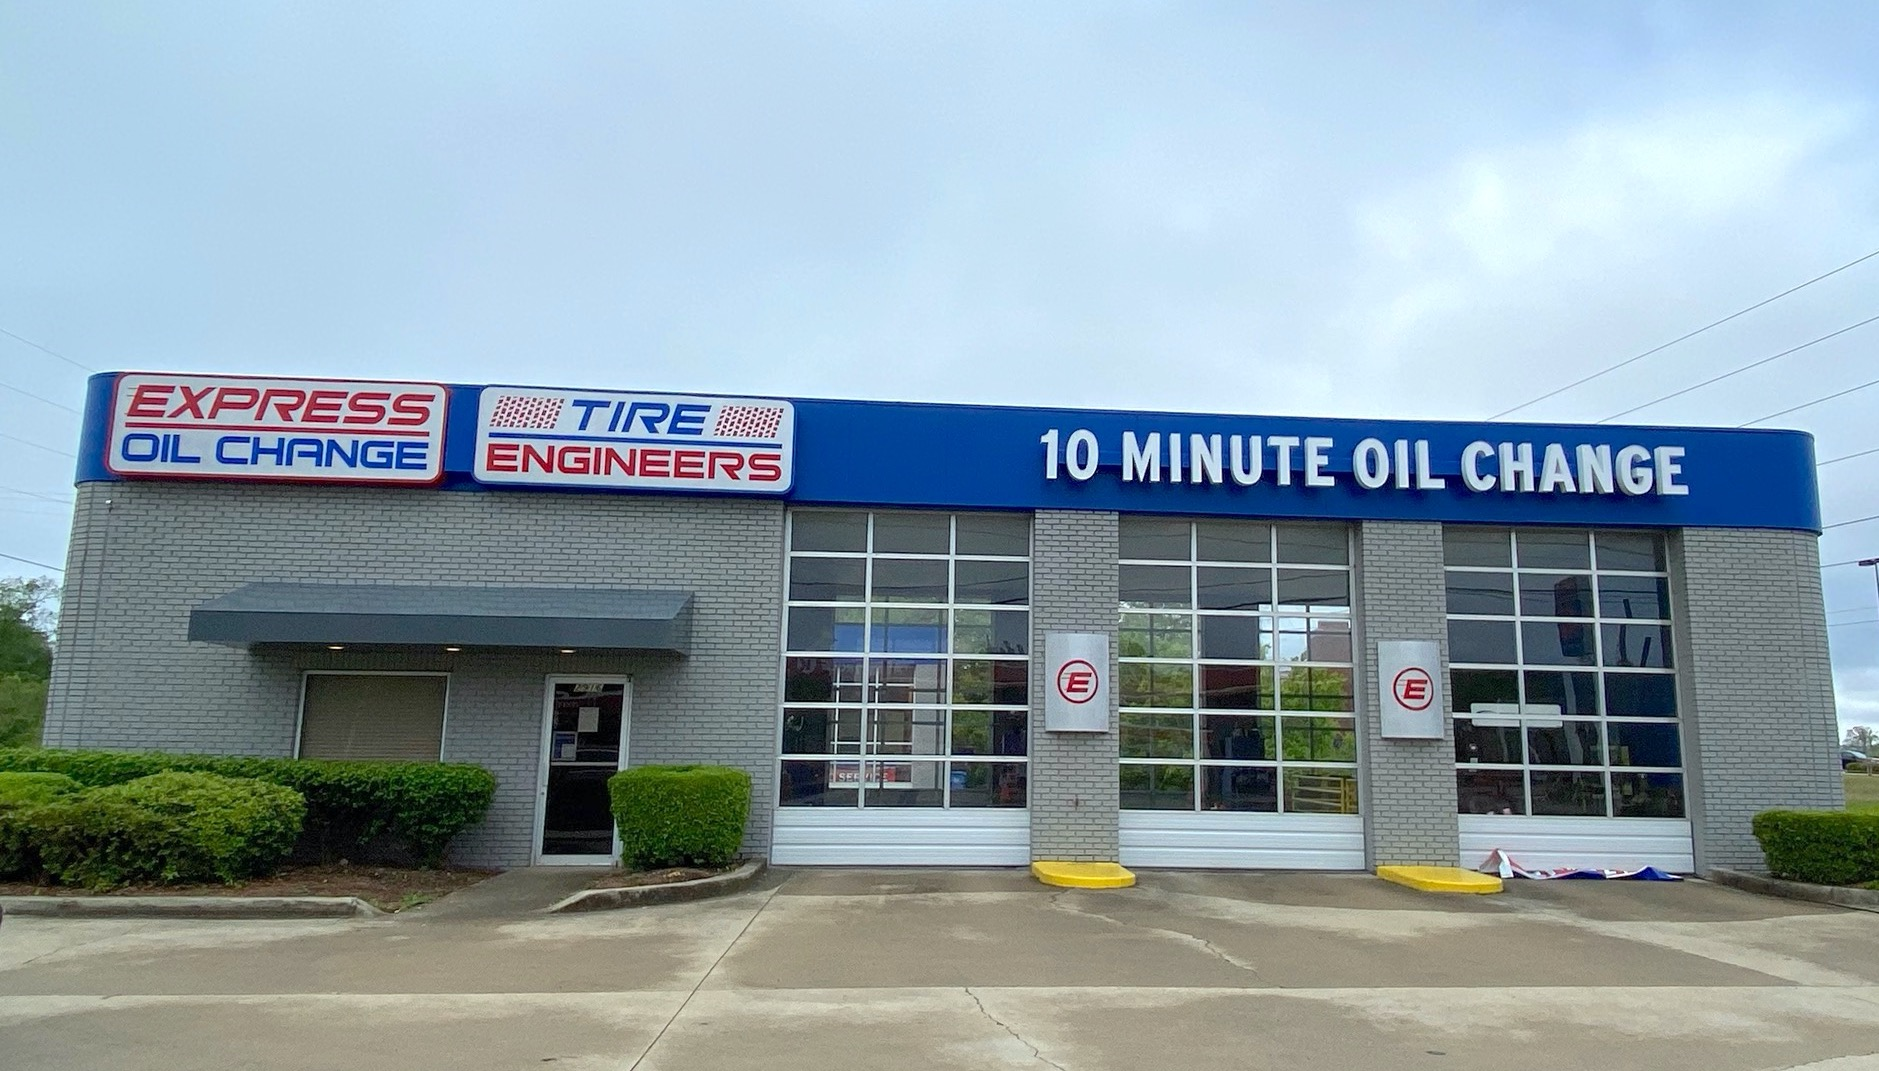 Express Oil Change & Tire Engineers at Bessemer, AL - Morgan Road store